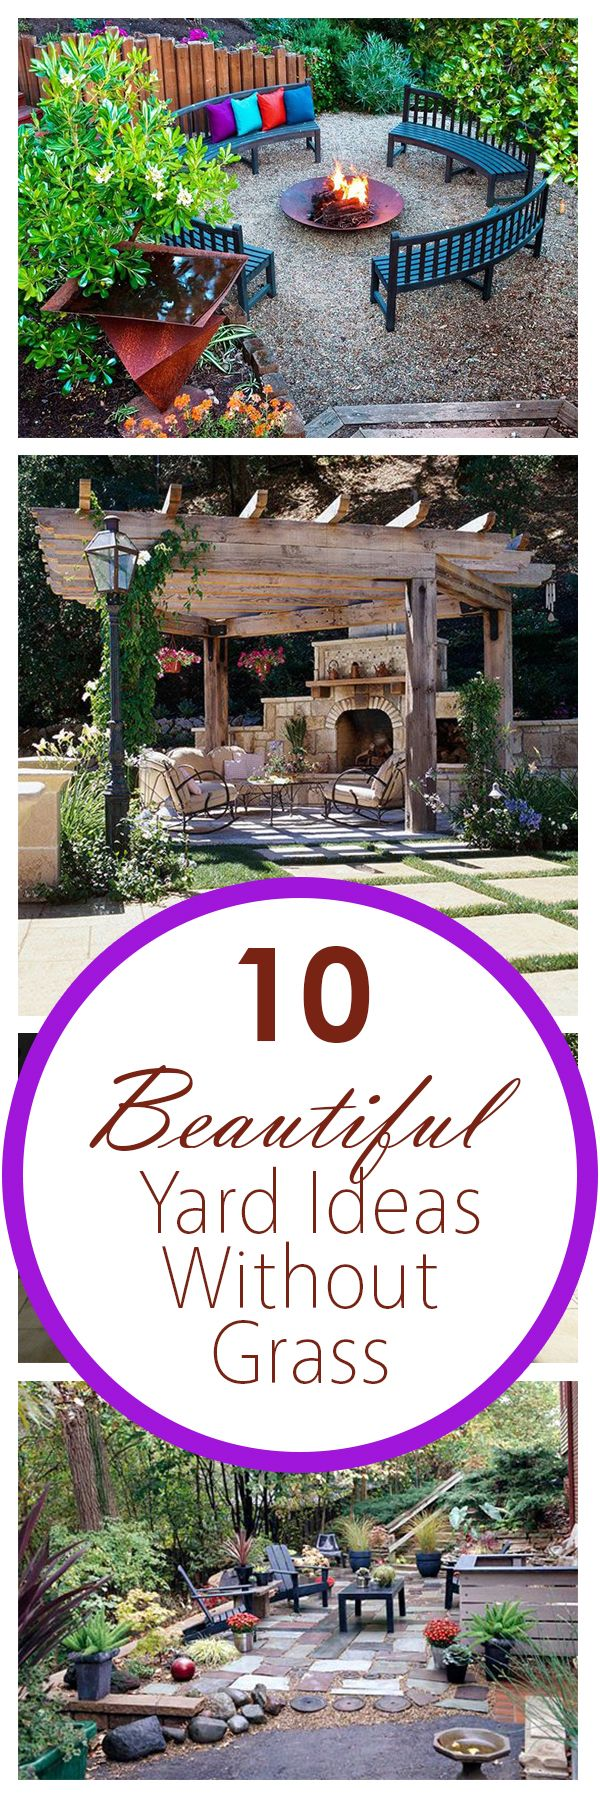 10 beautiful yard ideas without grass yard ideas grasses and yards